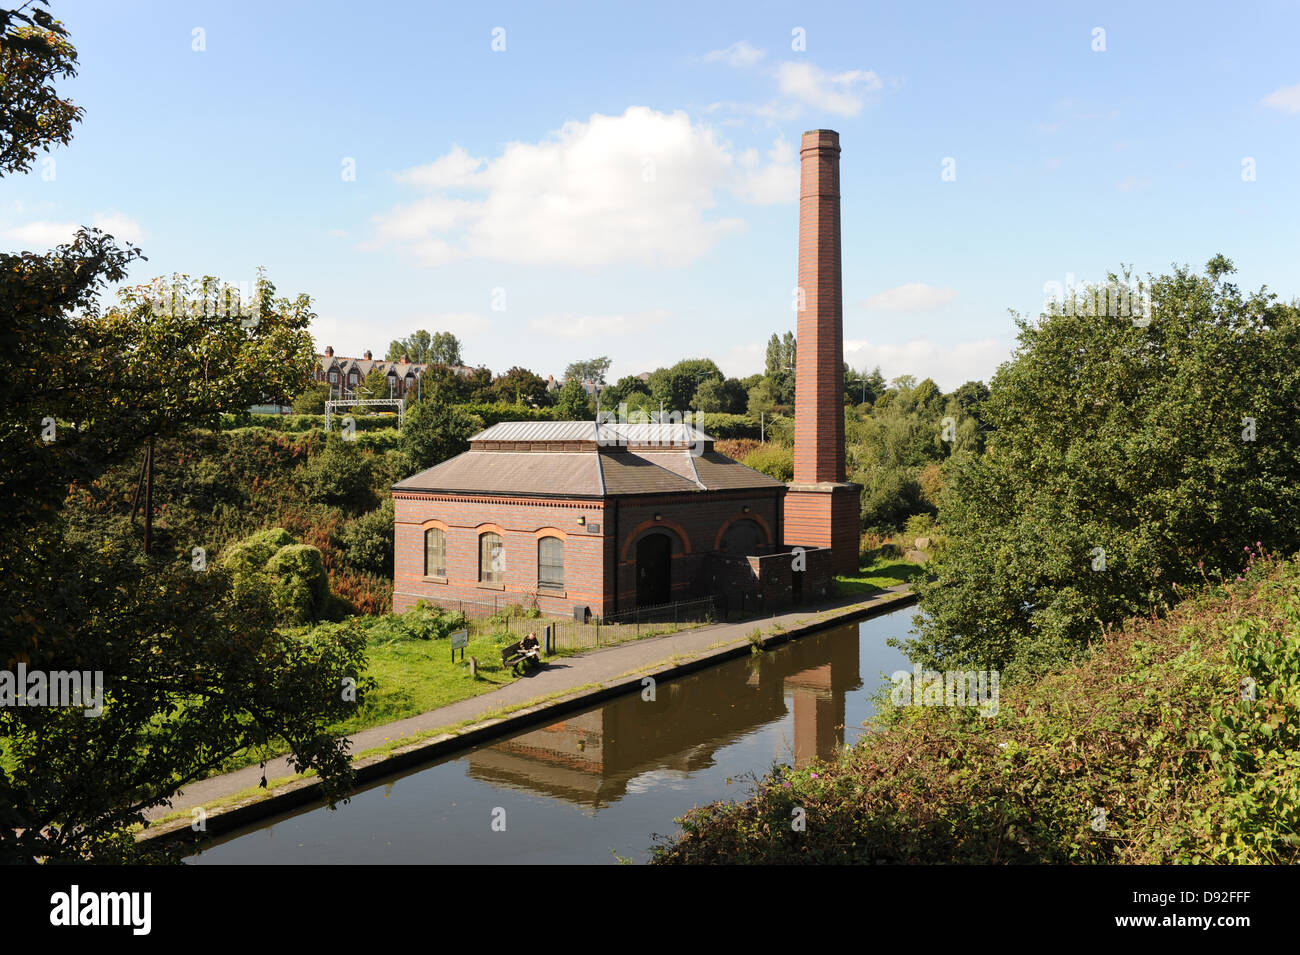 The new Smethwick Pumping Station in Sandwell and the Old Birmingham Main Line Canal - Stock Image